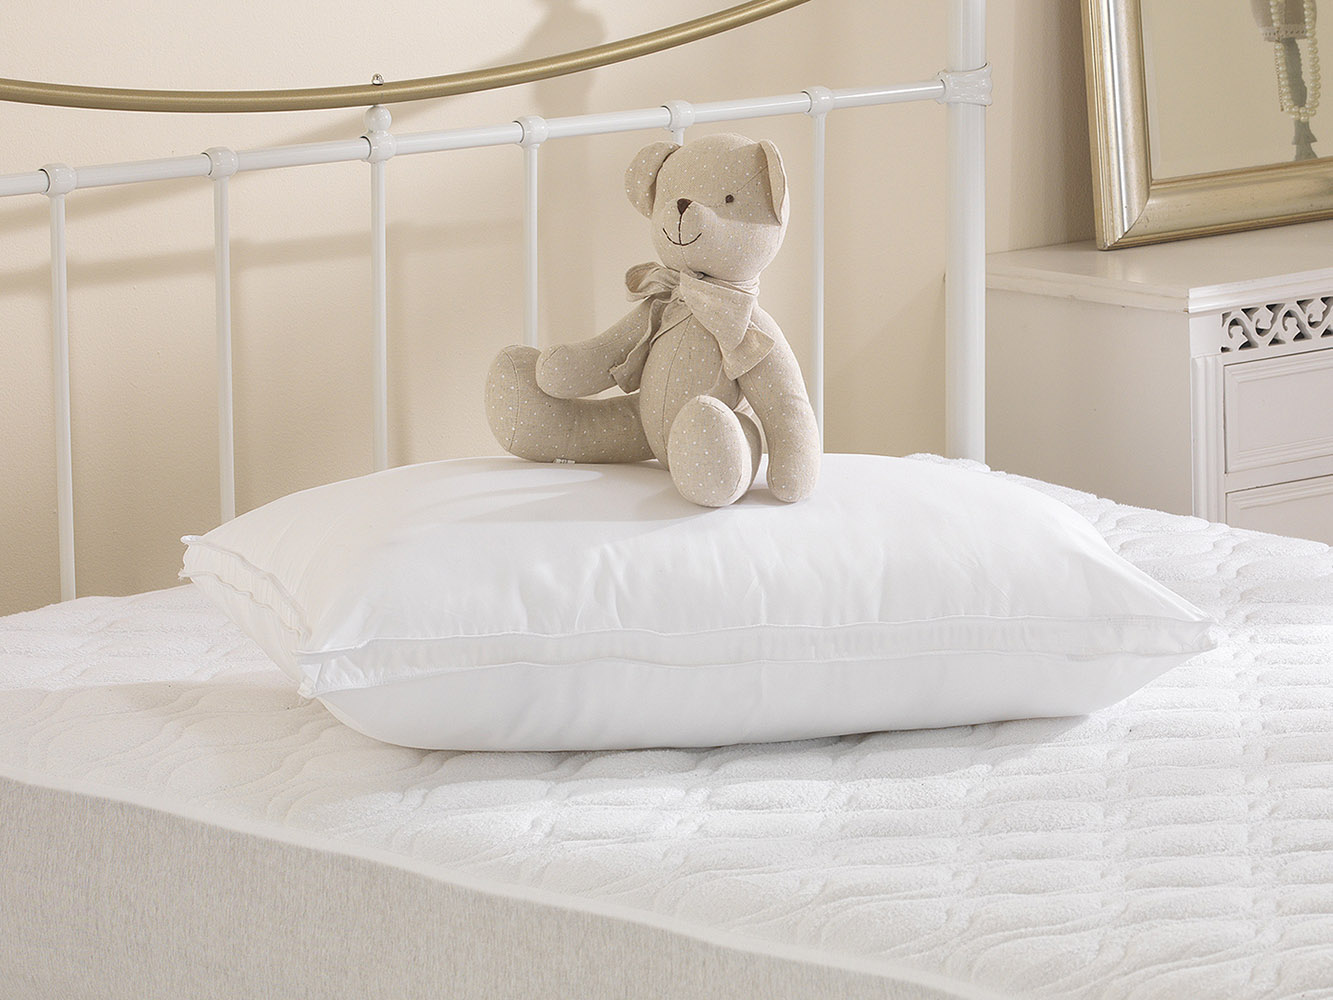 100% Peached Microfibre, Soft As Down, 3cm Gusseted Pillow